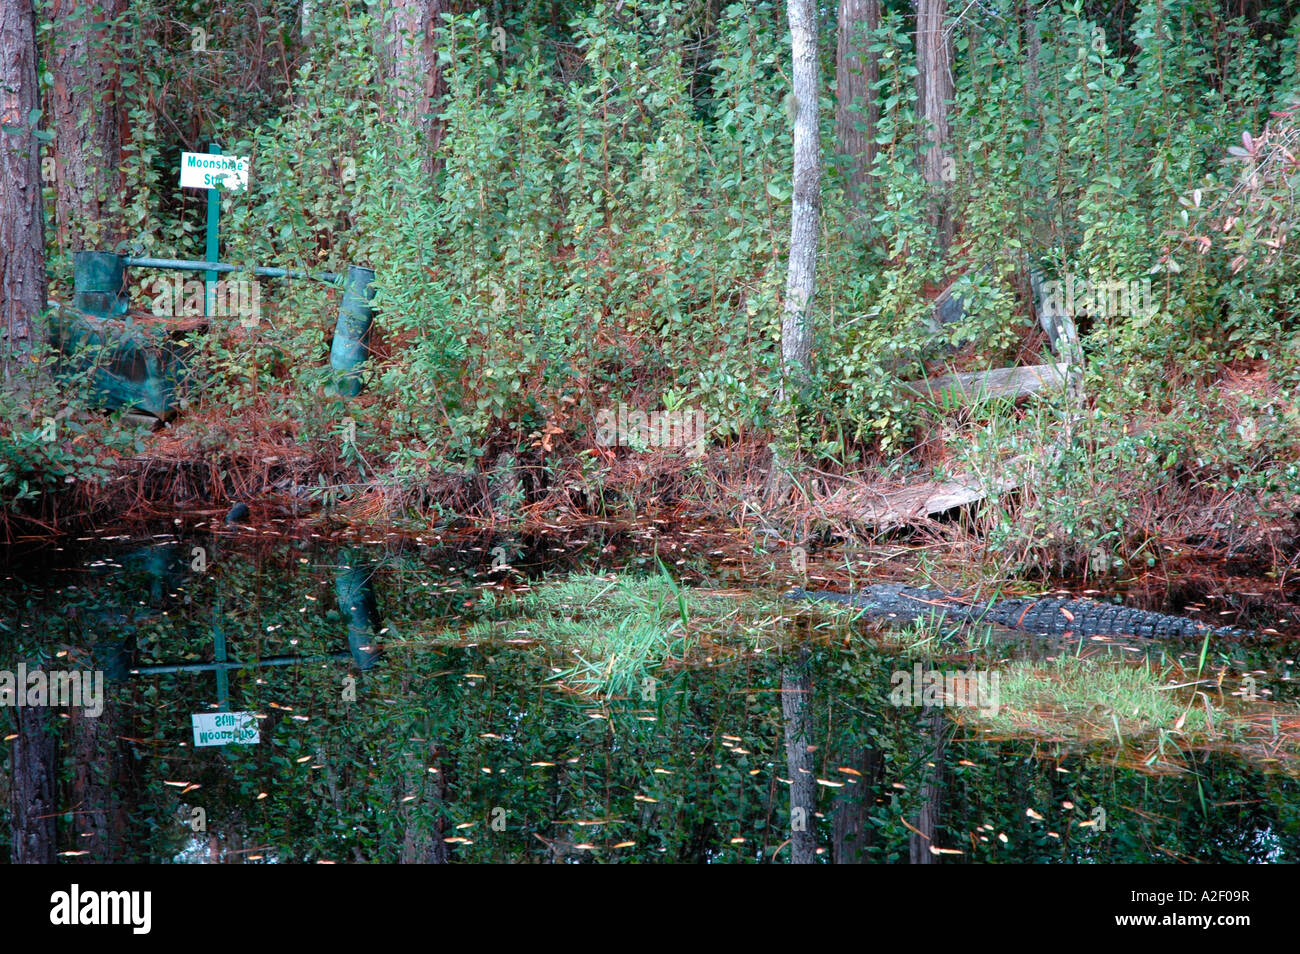 P32 027 Okefenokee - Moonshine Still With Gator - Georgia - Stock Image